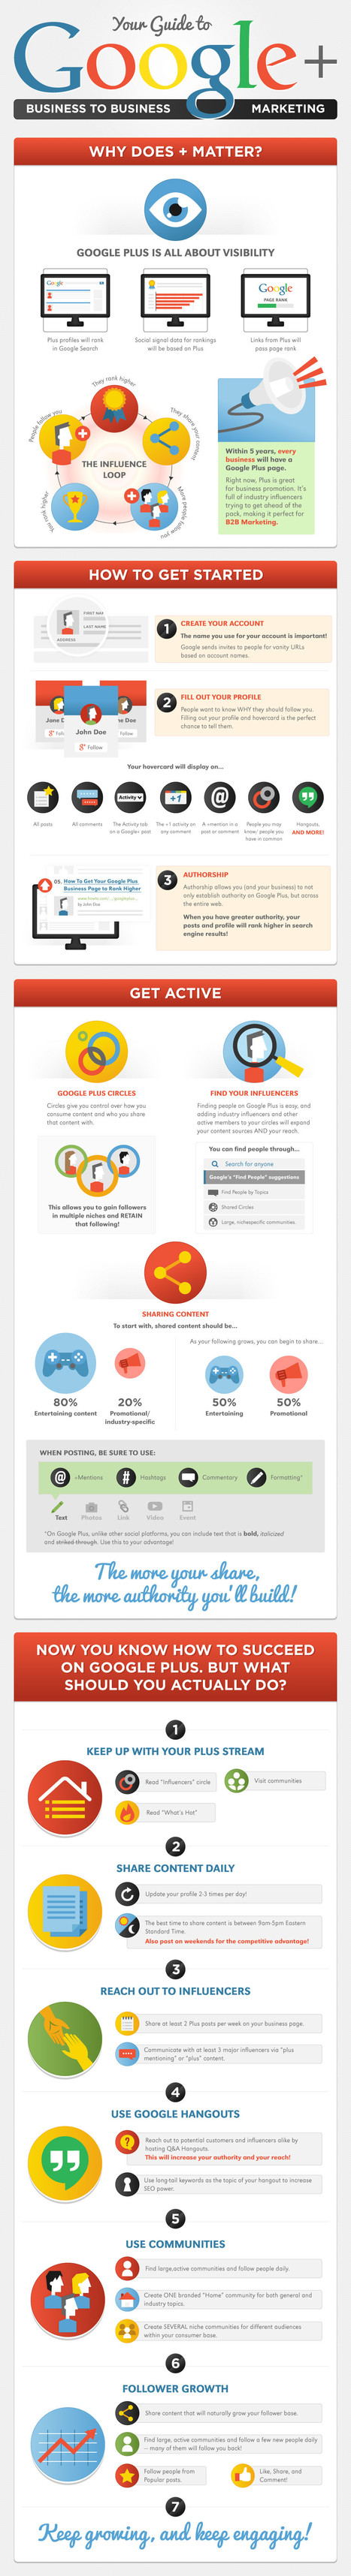 Your Guide to GooglePlus Business to Business Marketing #infographic | MarketingHits | Scoop.it